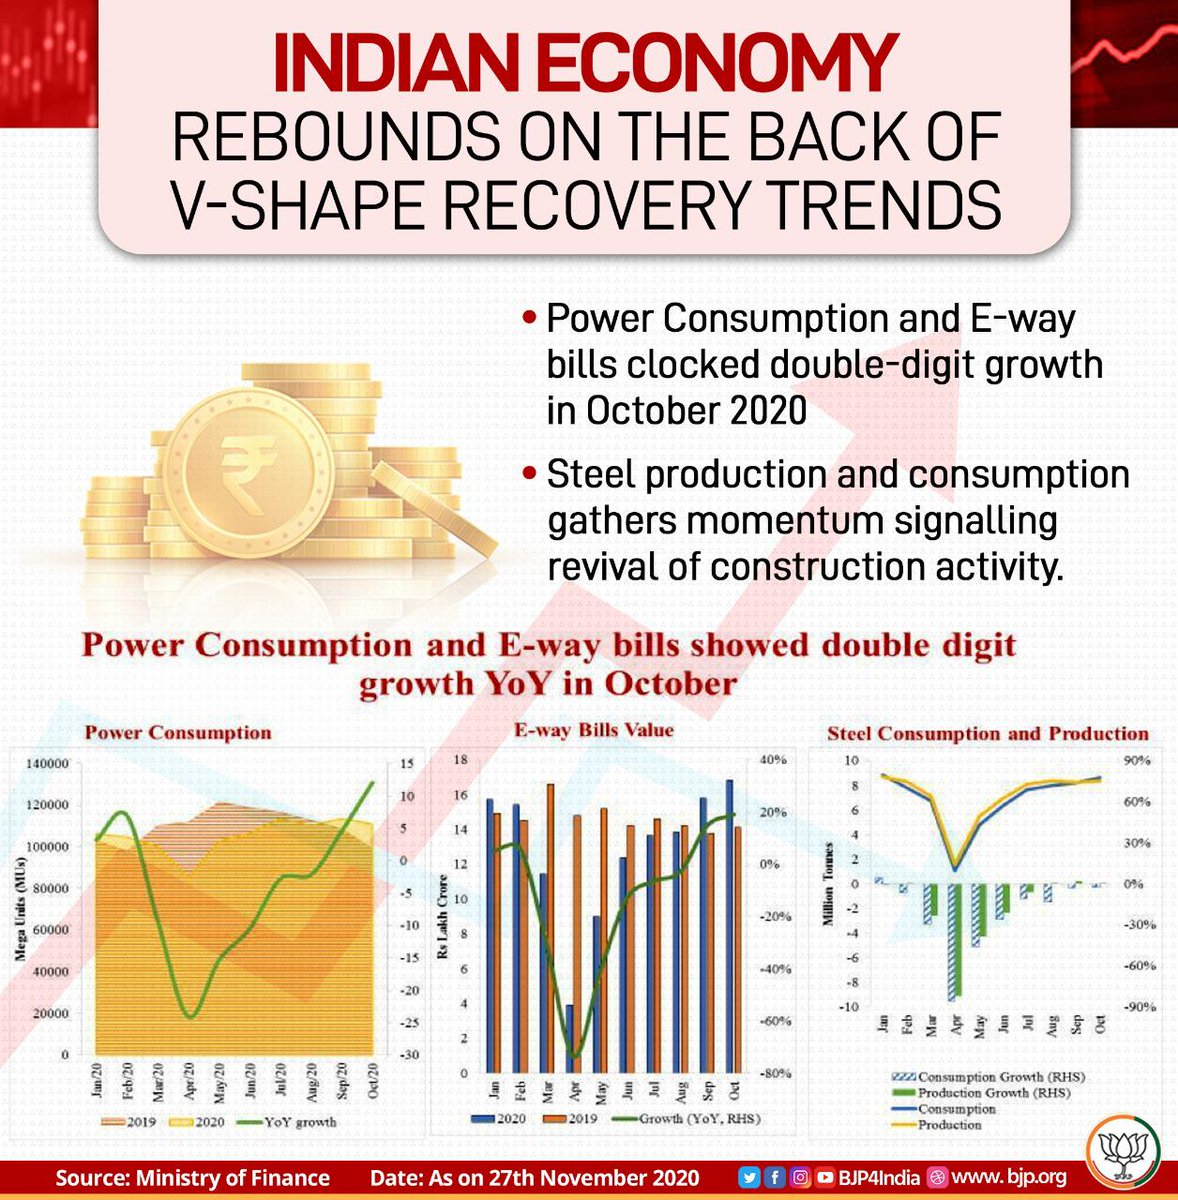 Indian economy rebounds on the back of V-shape recovery trends across the sectors.   Power consumption clocked double-digit YoY growth of 12.1% in Q2.  E-Way bills clocked double-digit YoY growth of 21.4%.  Steel consumption and production gathered momentum too.  #EconomyRebounds